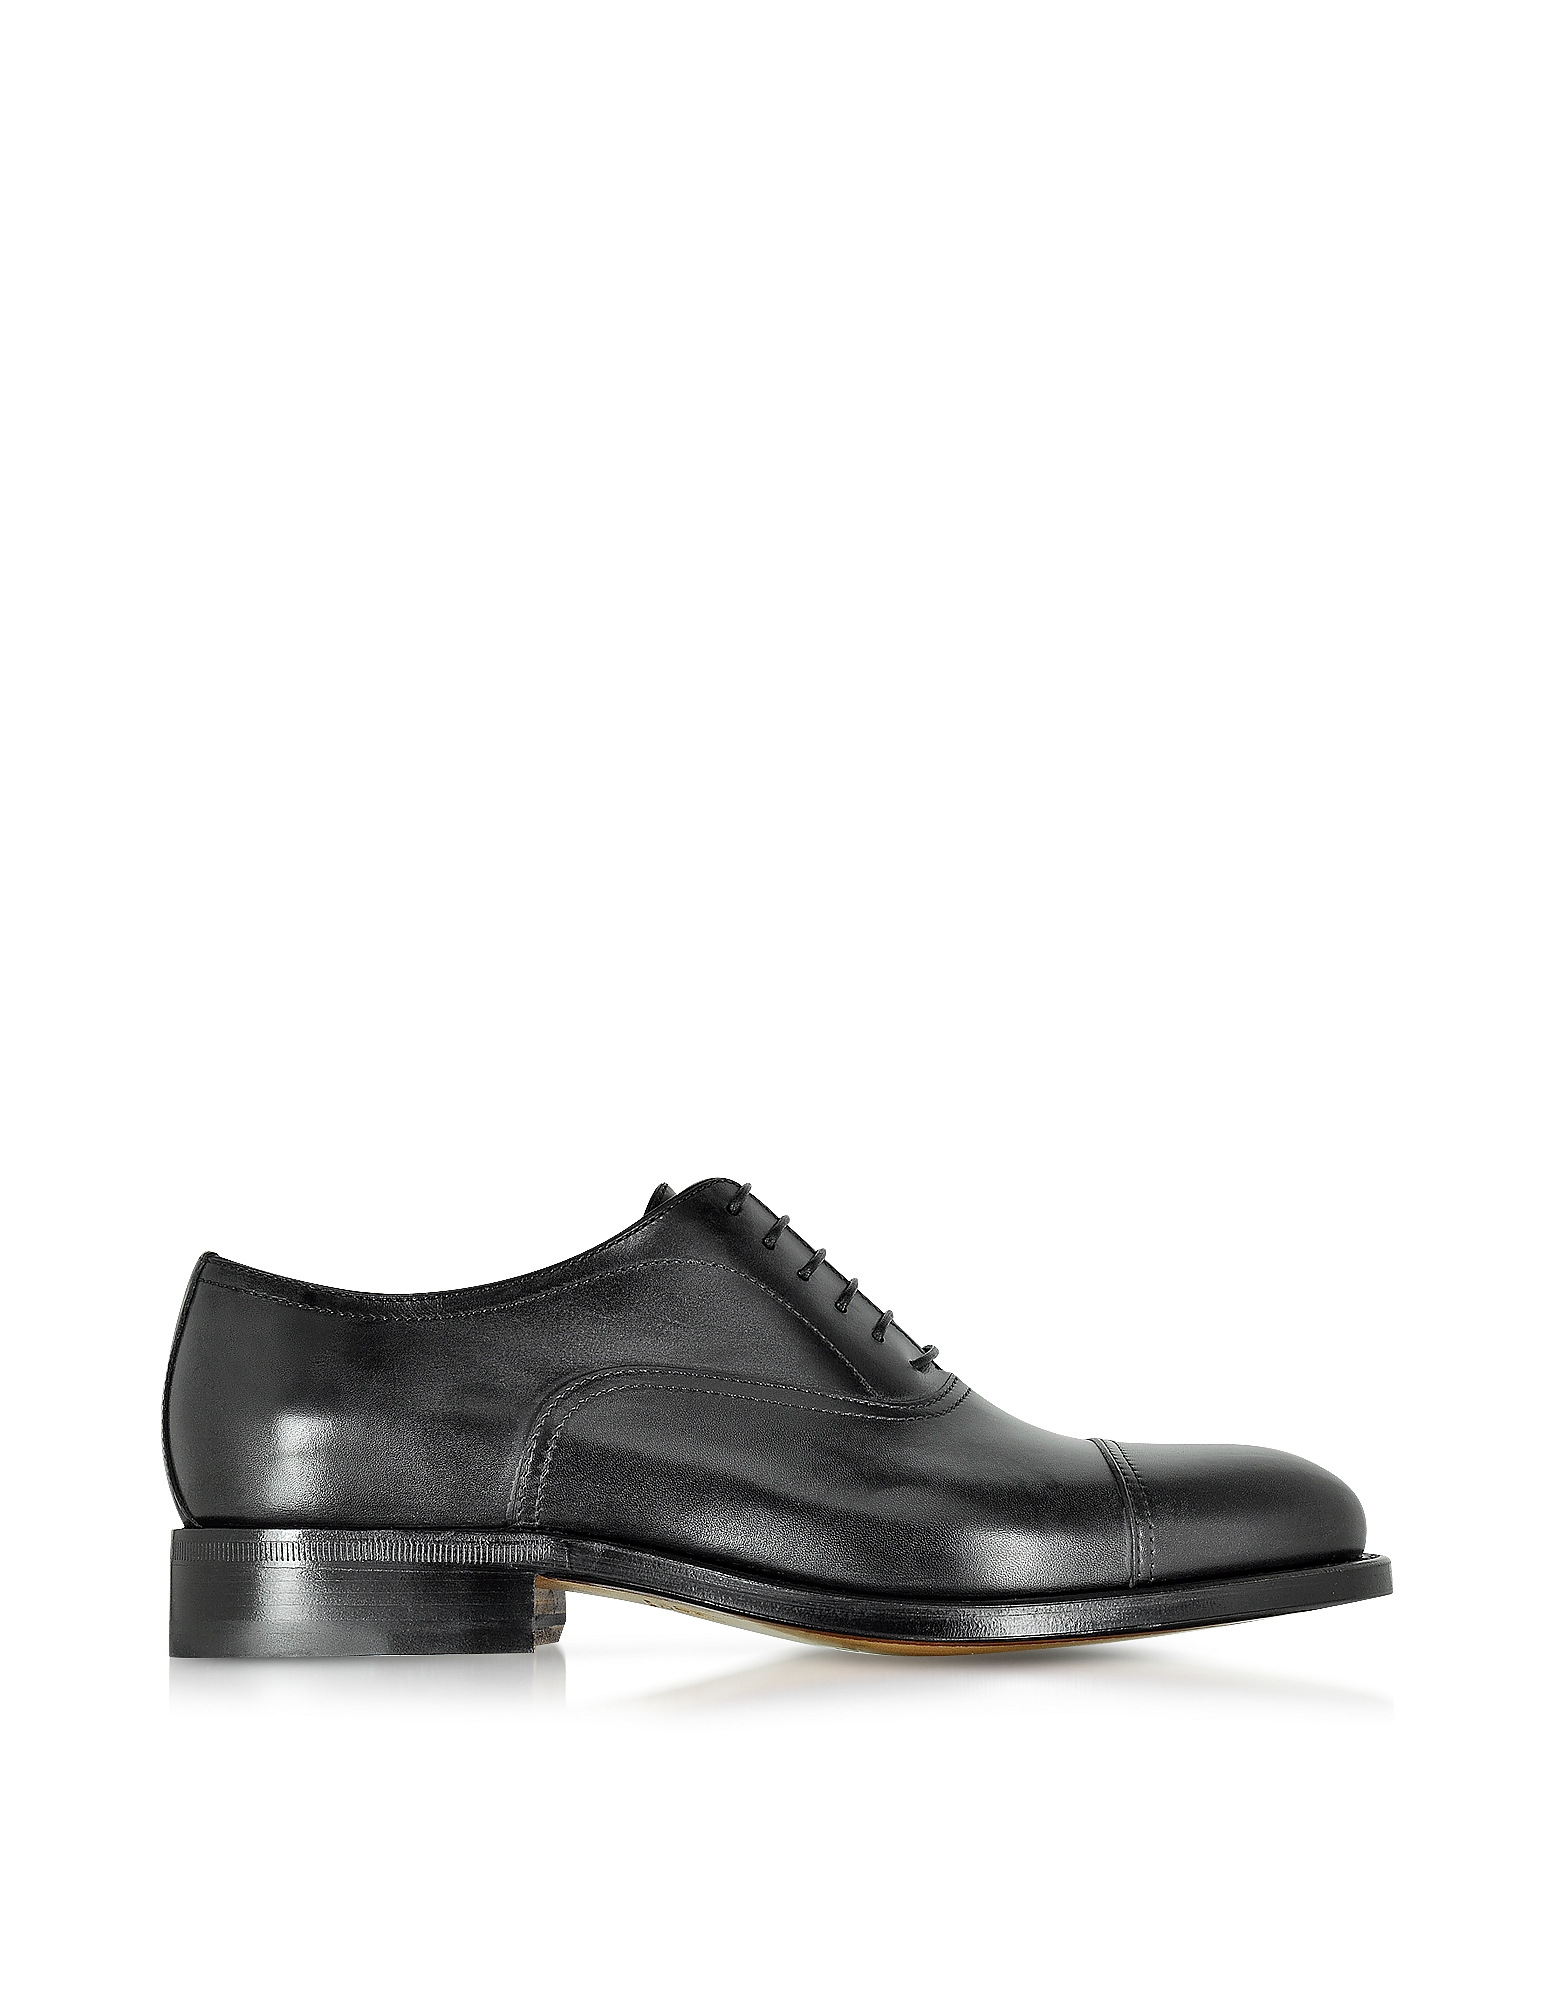 Moreschi Shoes, Cardiff Black Genuine Leather Goodyear Oxford Shoe